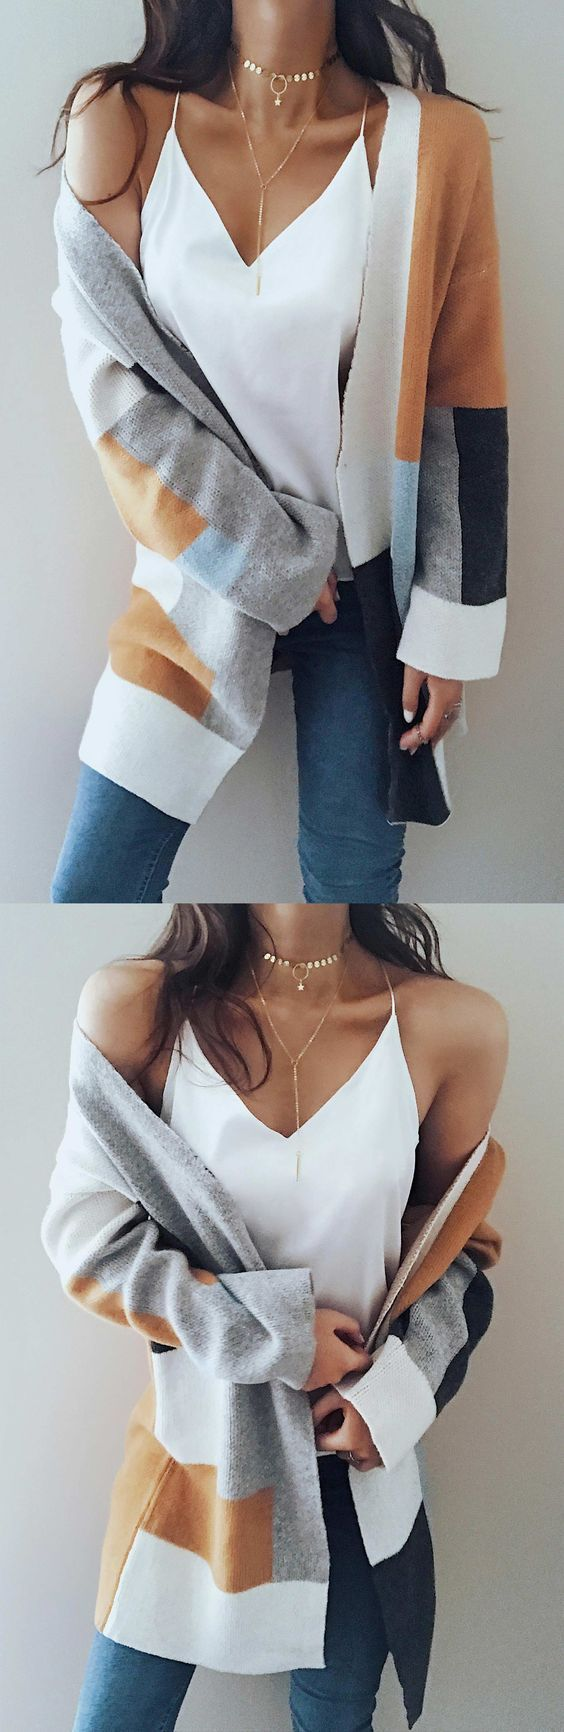 Loving this sweater! Also loving the necklaces. #winter #fashion #women